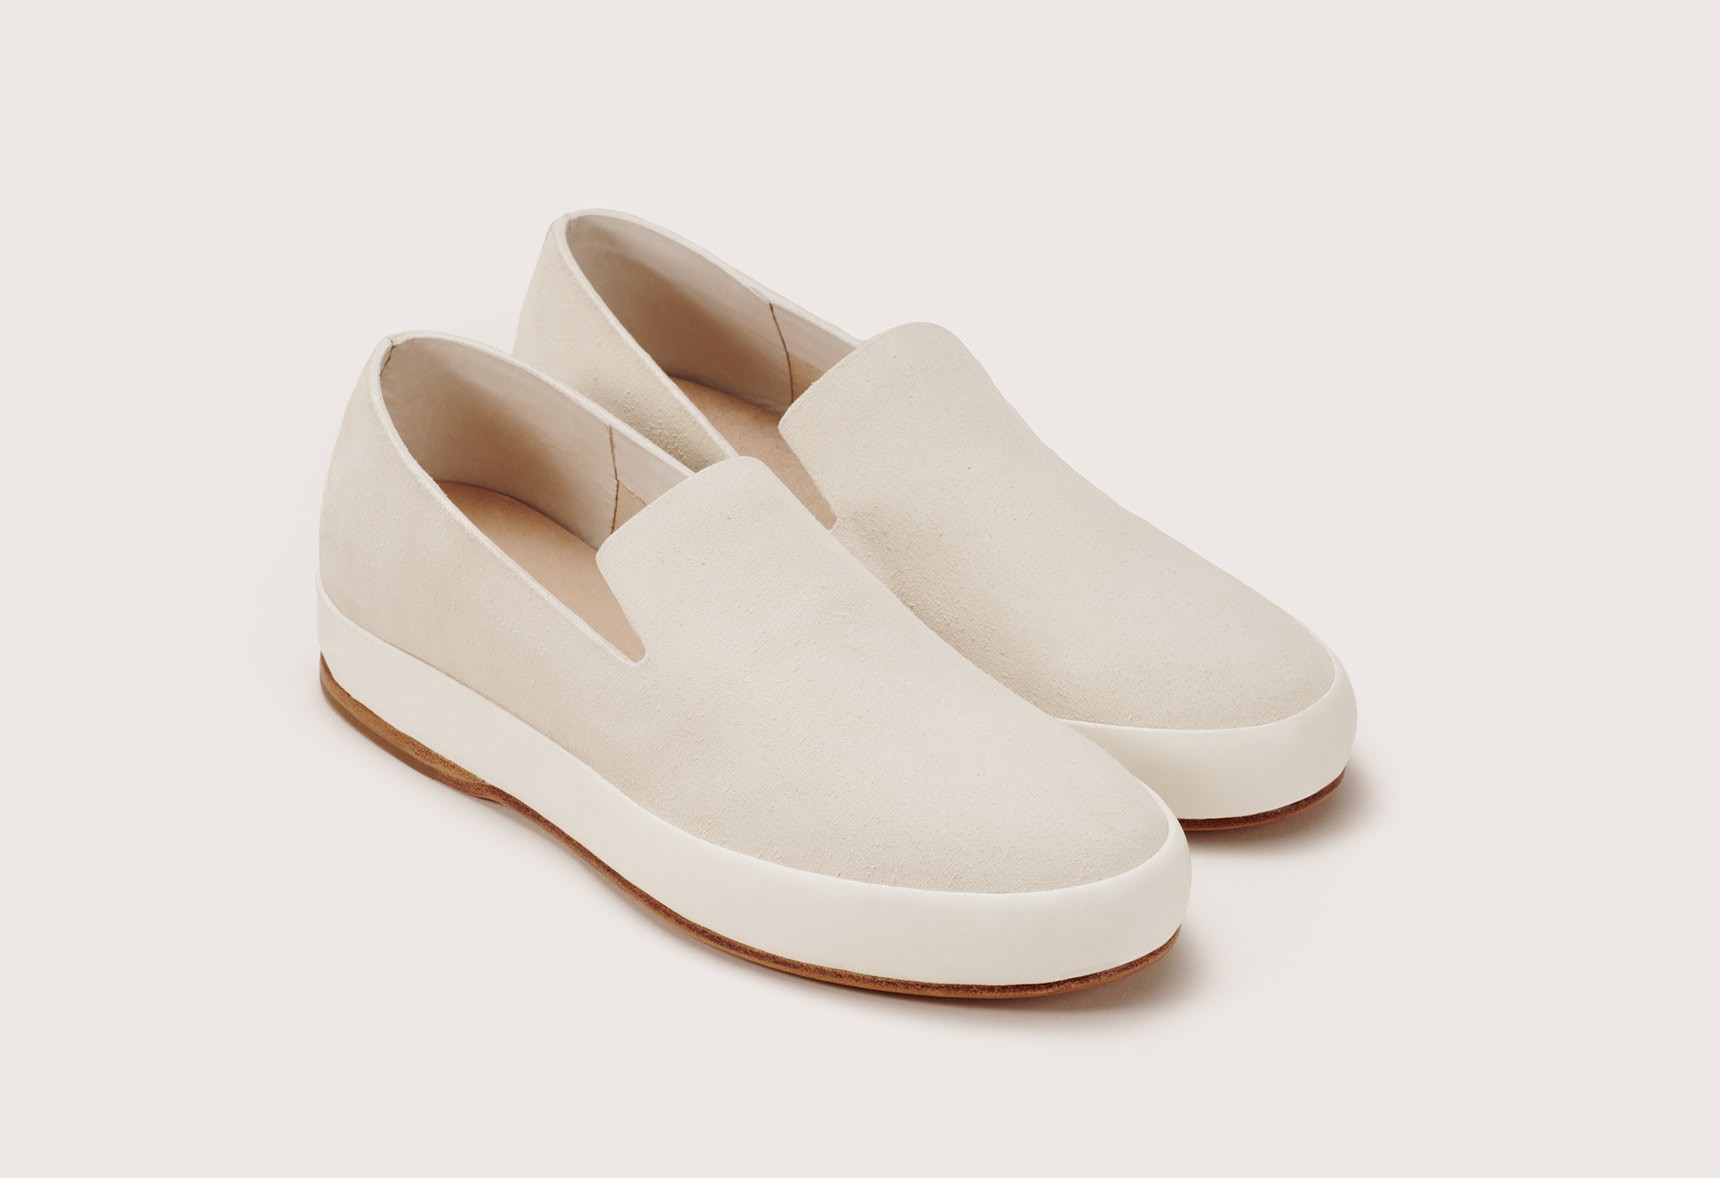 FEIT SLIPPERS